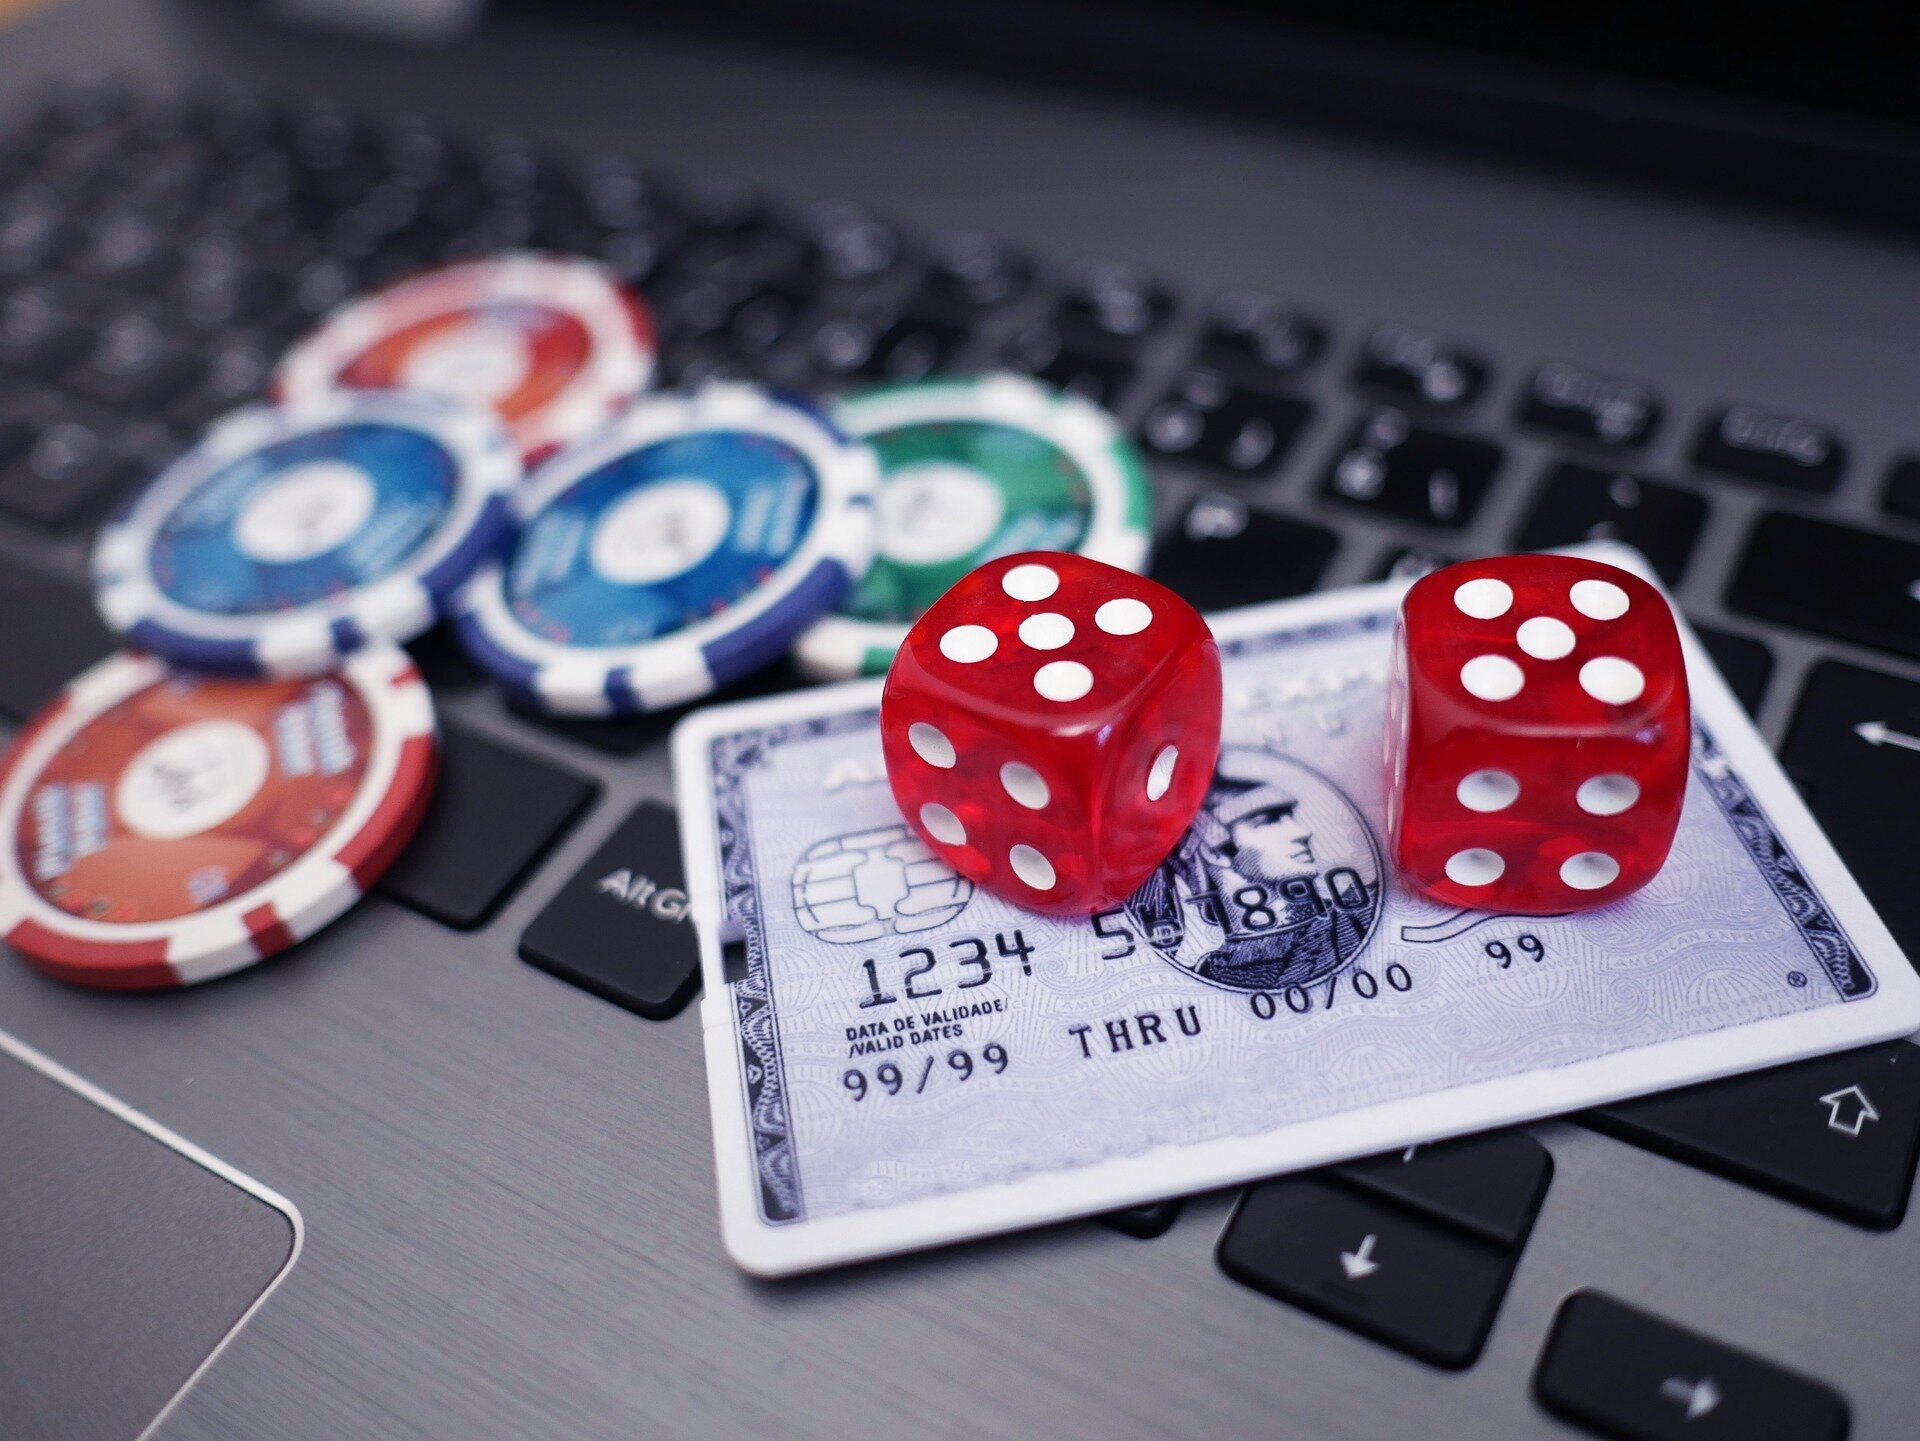 credit card, poker chips and playing cards on laptop